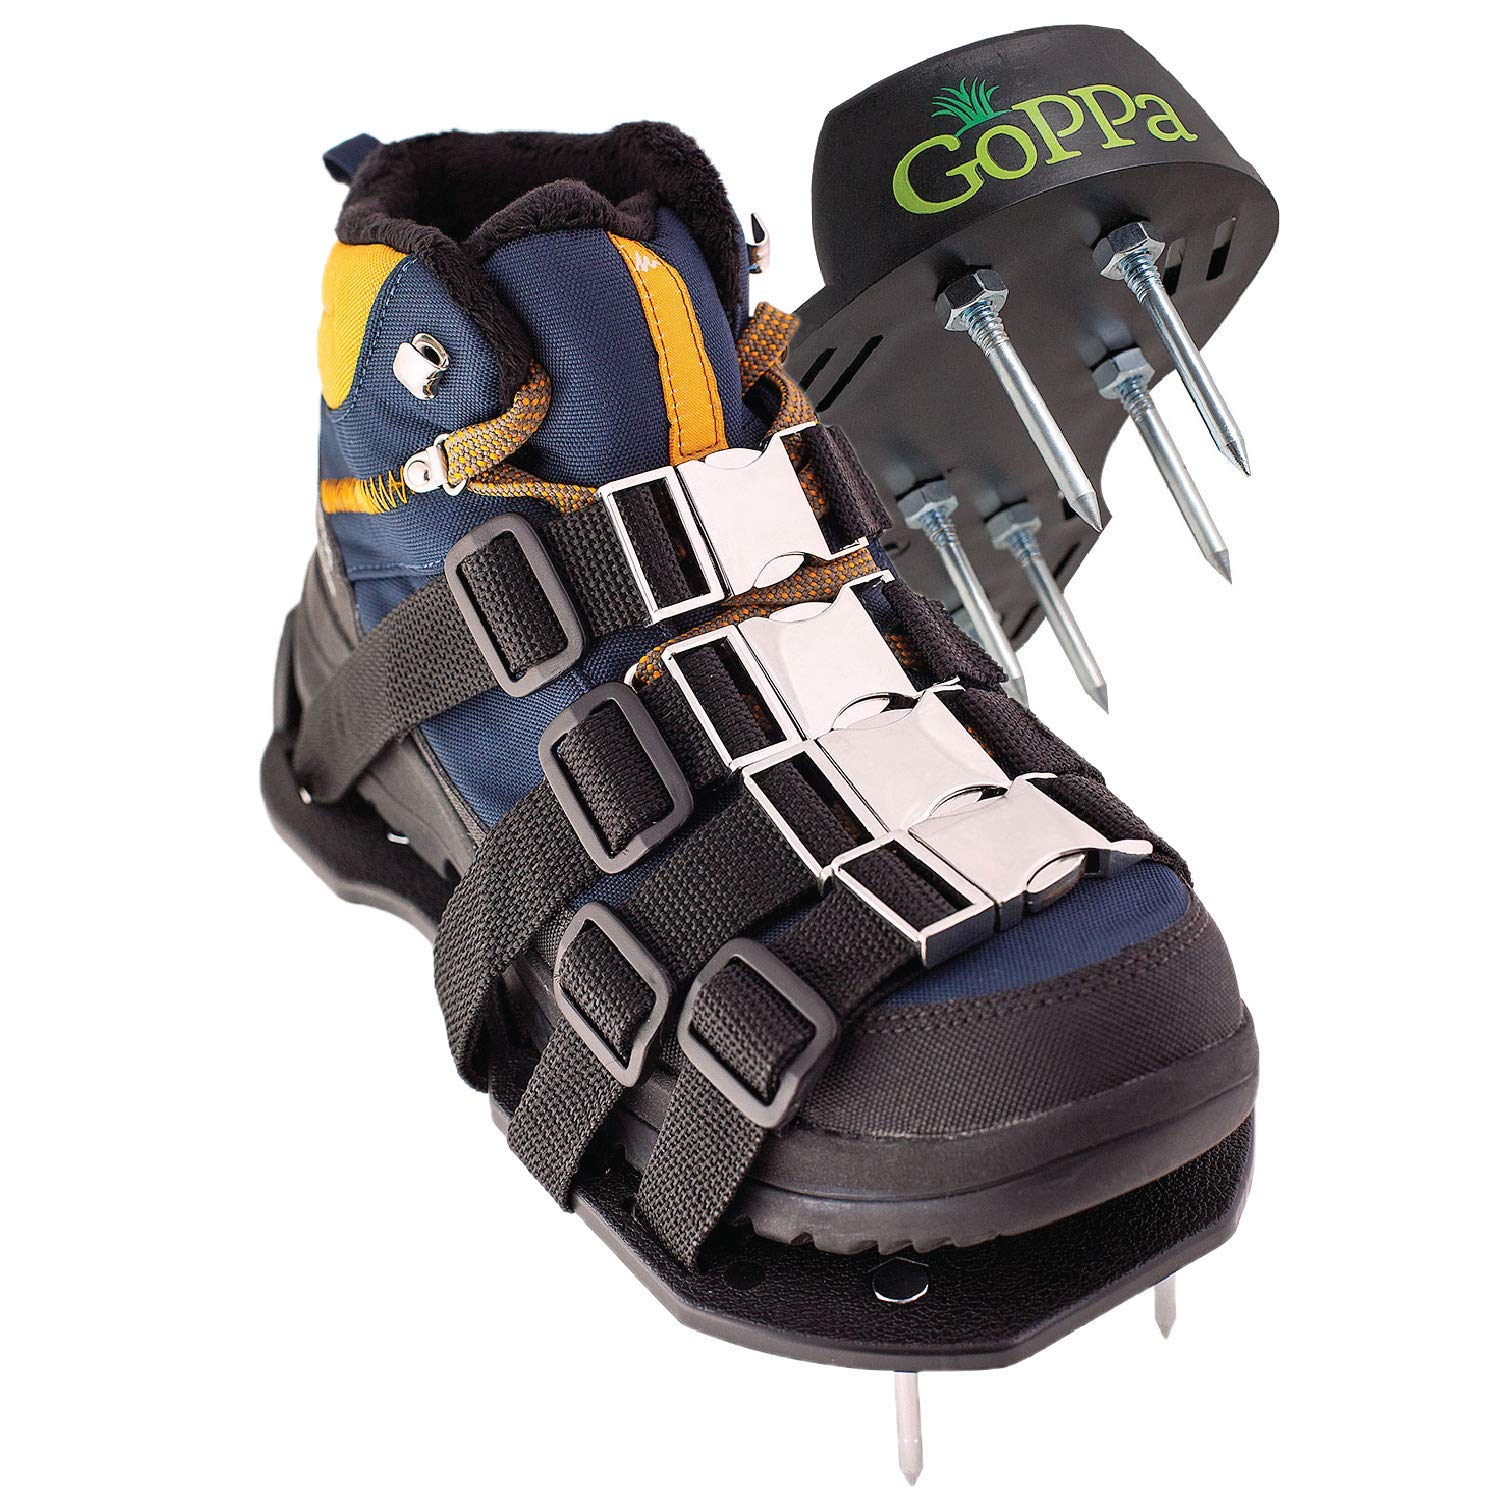 GoPPa Lawn Aerator Shoes - Heavy Duty Lawn Aerator Sandal, You only FIT Once. Ready for aerating Your Yard, Lawn, Roots & Grass - Strong Design by GoPPa